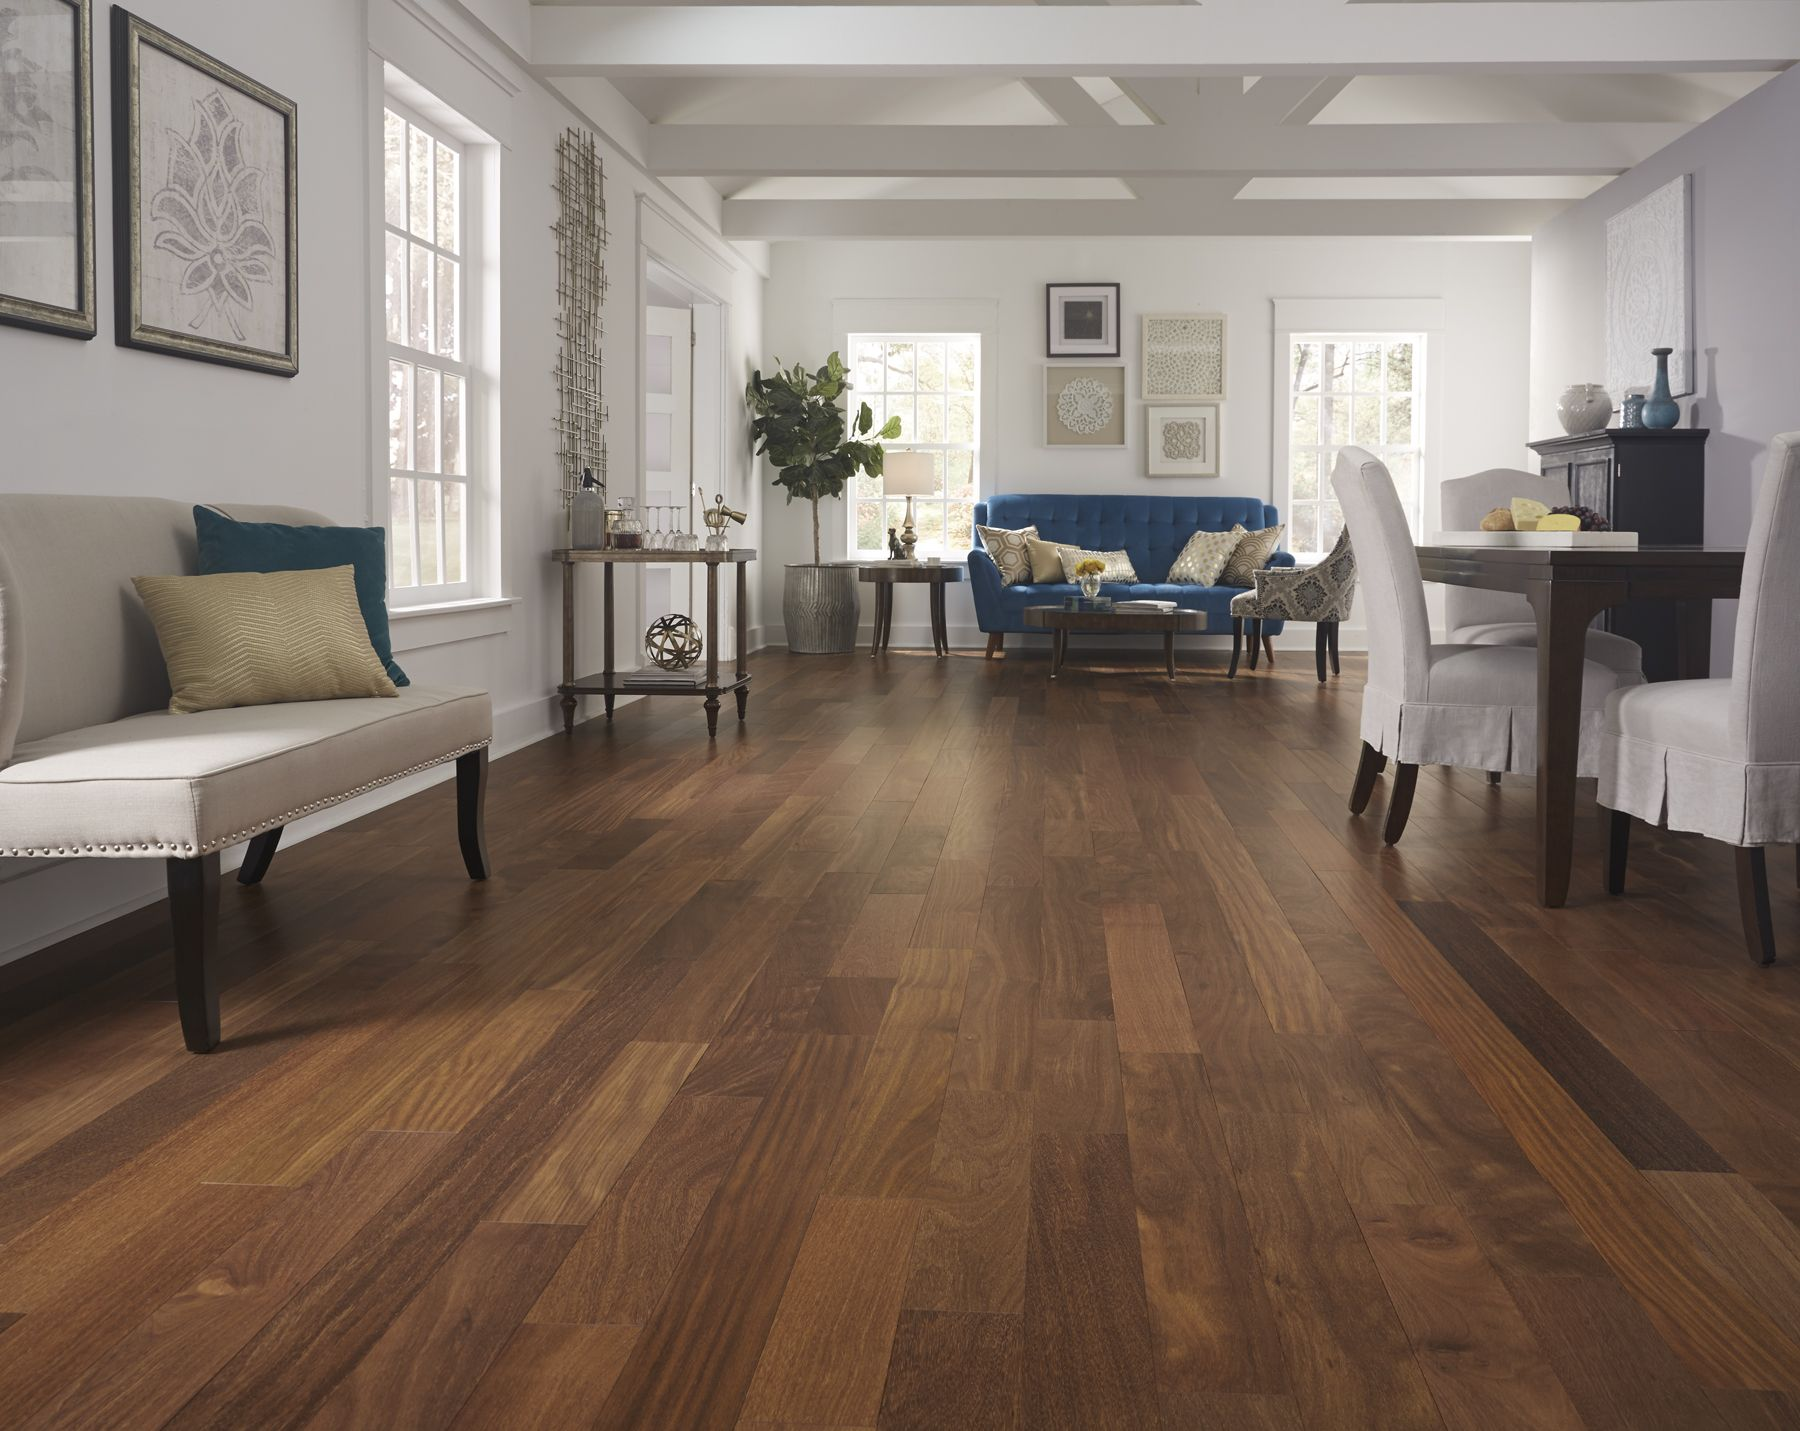 Bellawood 3 4 X 5 Matte Brazilian Chestnut Solid Hardwood Flooring Hardwood Flooring Prices Hardwood Floors Solid Hardwood Floors